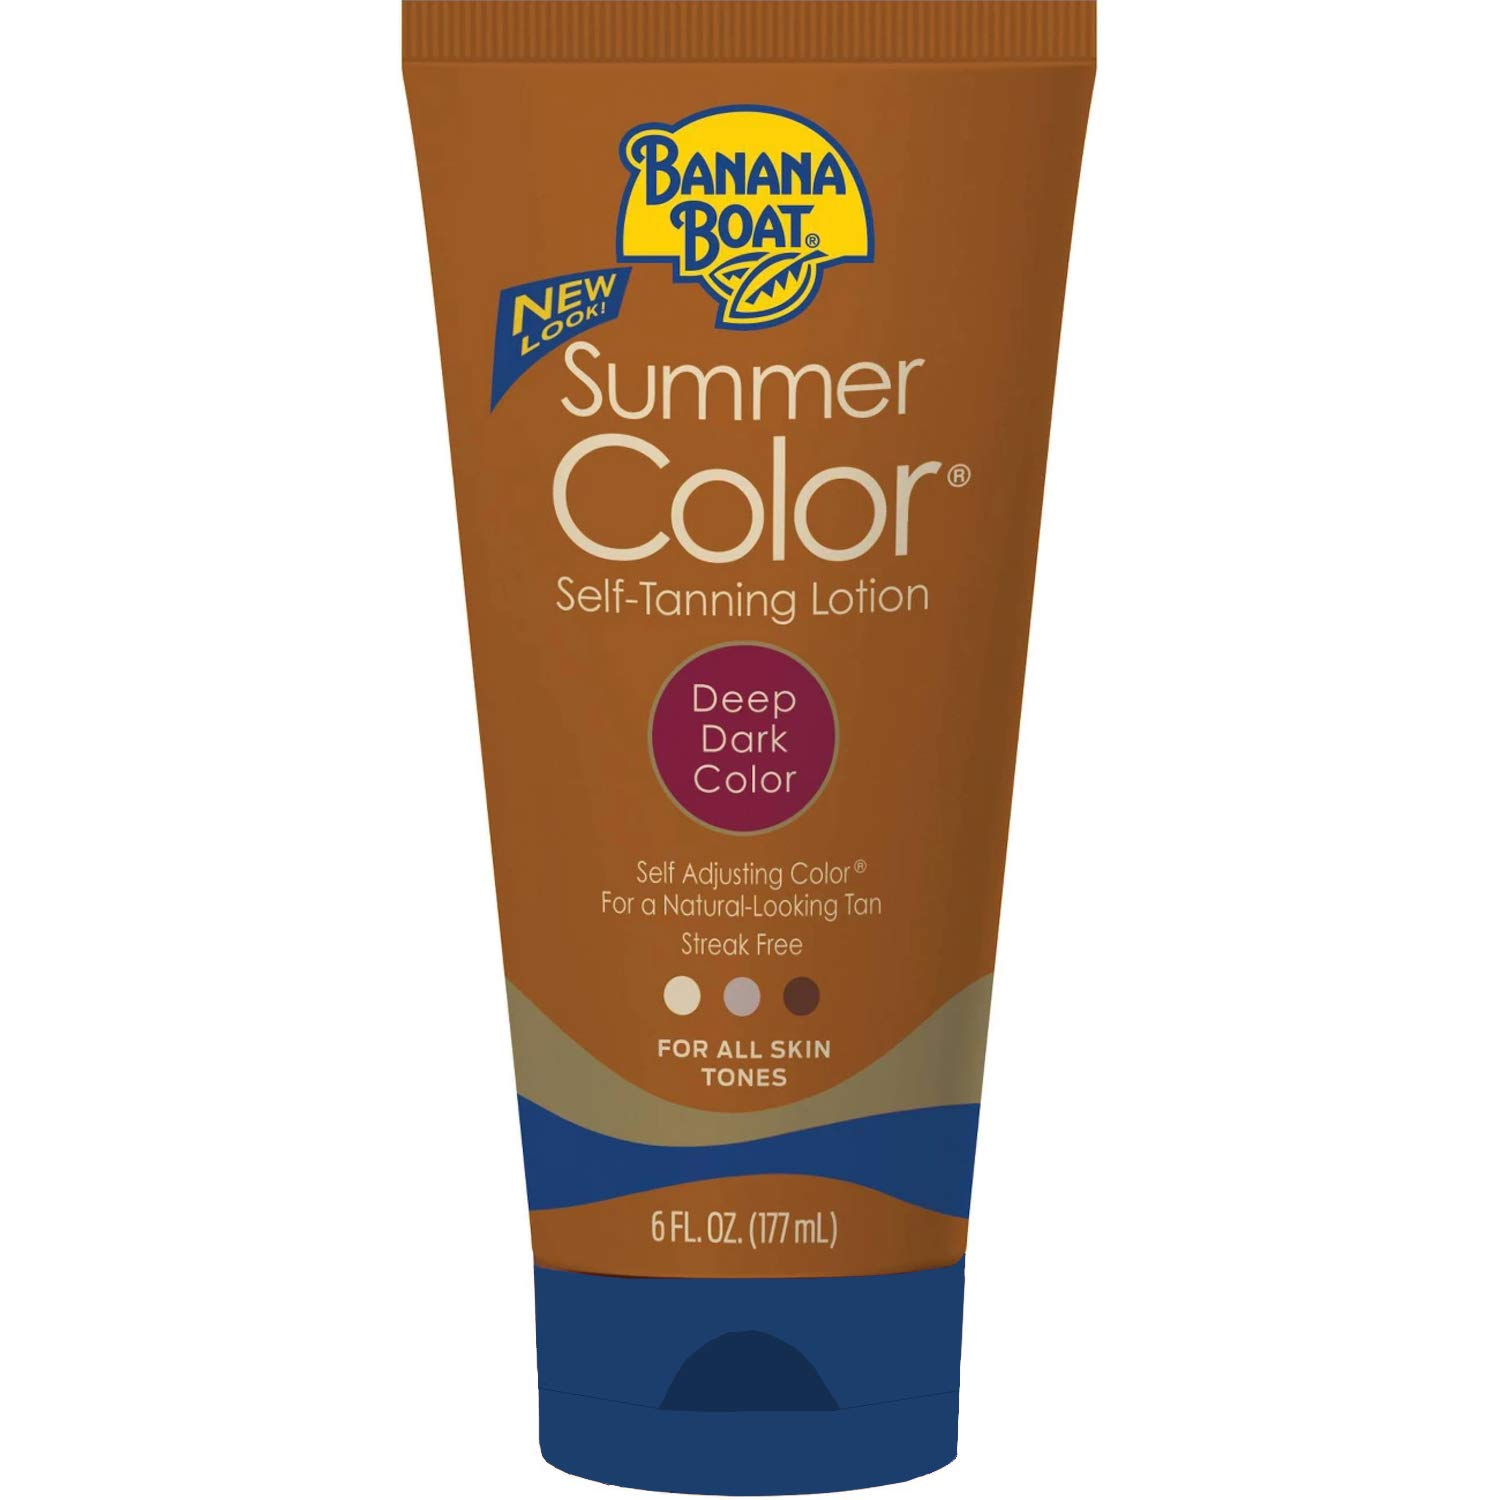 Summer Color Self Tanning Lotion - Deep Dark Color, 6 Ounces each (Value Pack of 4) by Banana Boat